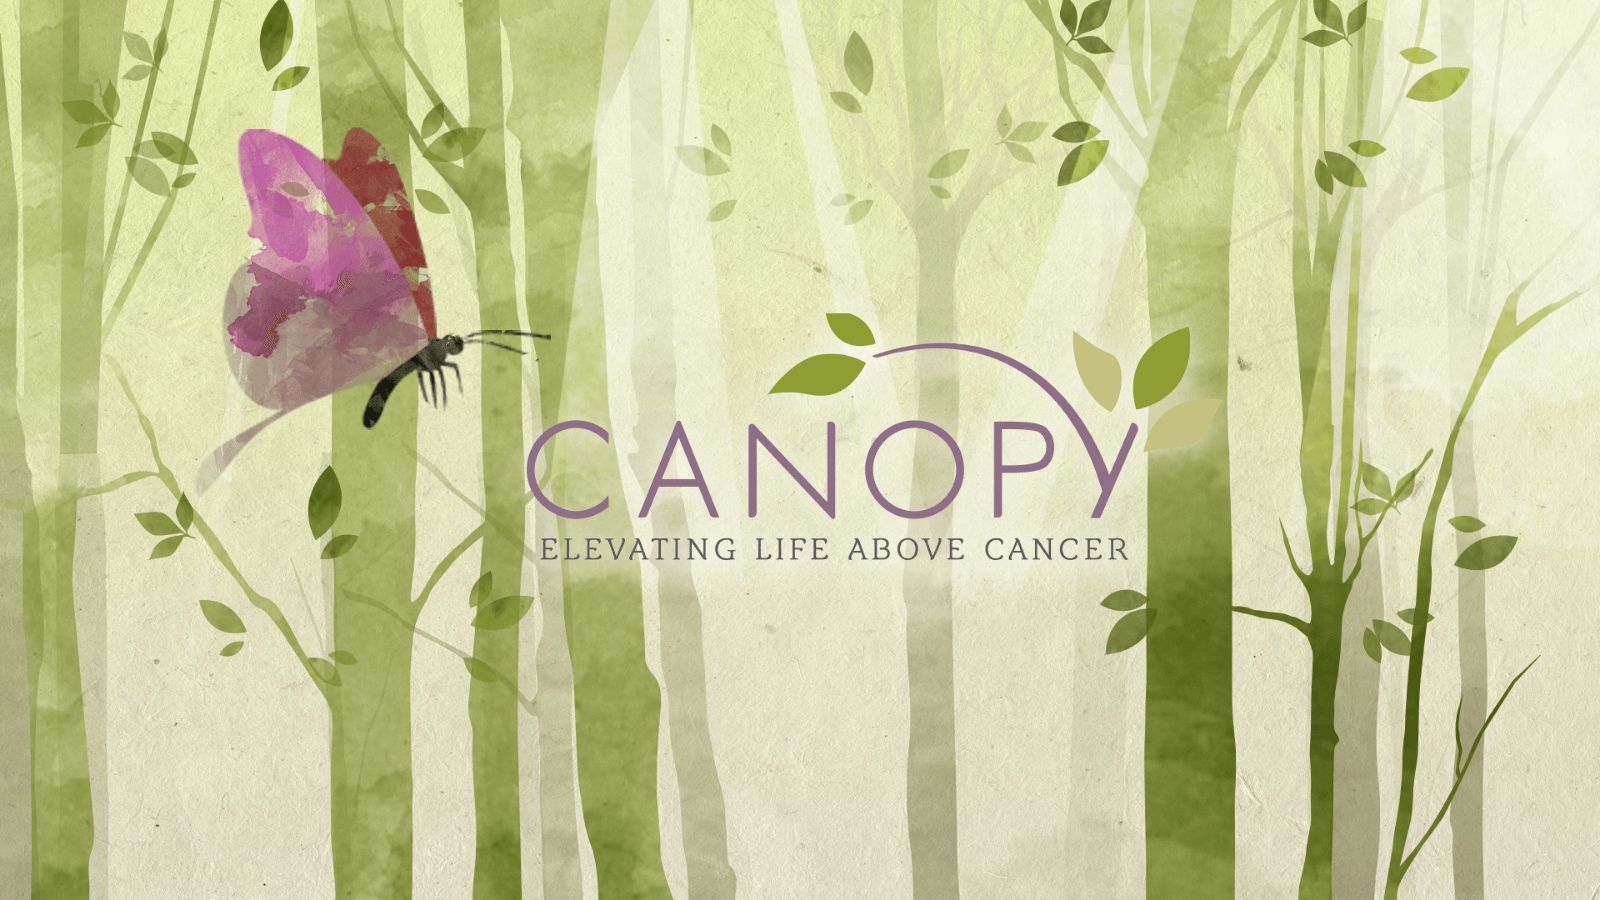 Canopy, Elevating Life Above Cancer (hero image of logo on a watercolor background)